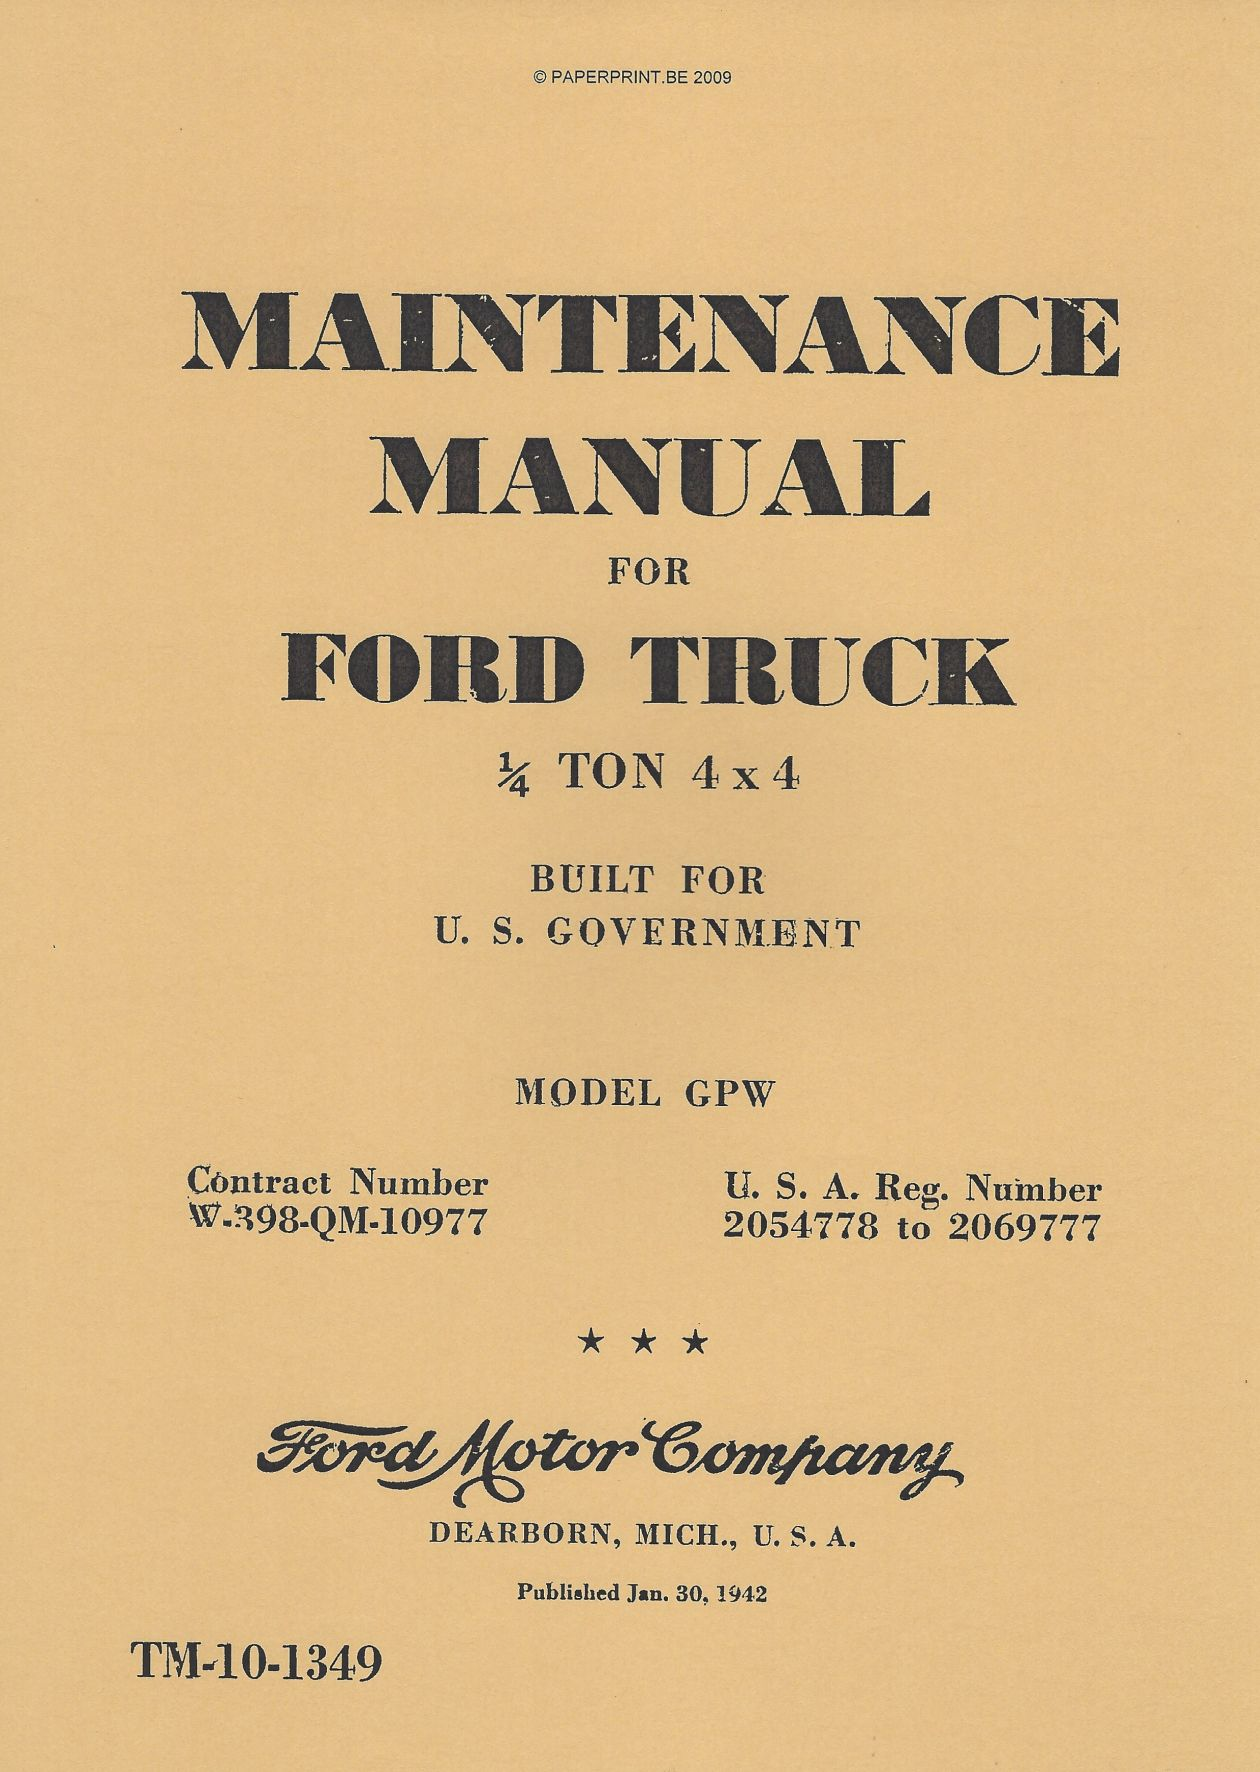 TM 10-1349 US MAINTENANCE MANUAL FOR FORD TRUCK ¼ TON 4x4